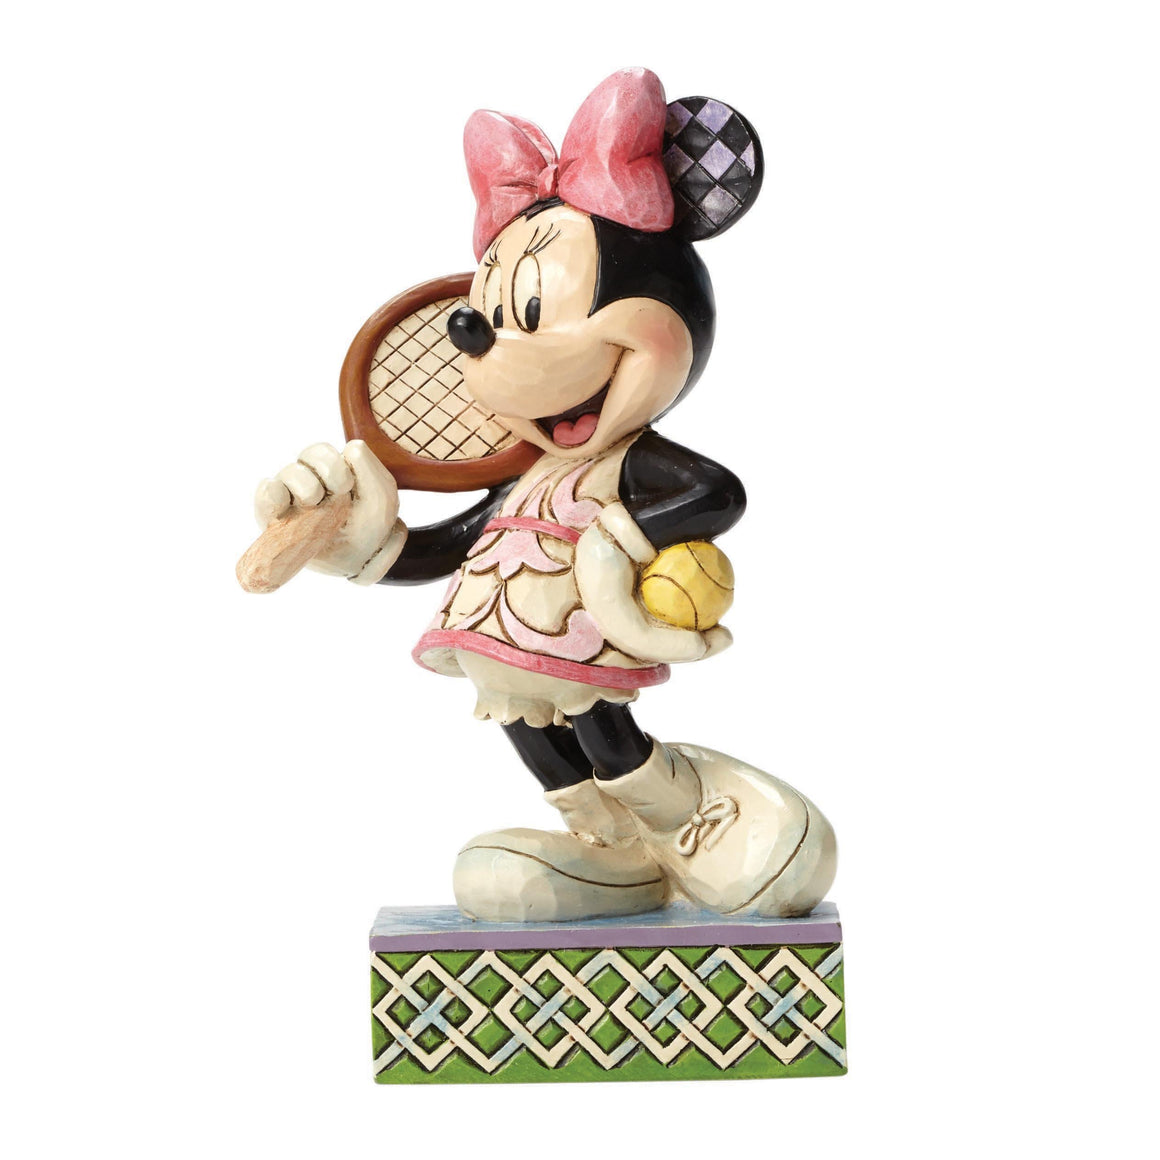 Disney Traditions by Jim Shore Tennis, Anyone? - Minnie Mouse Figurine - Website Exclusive